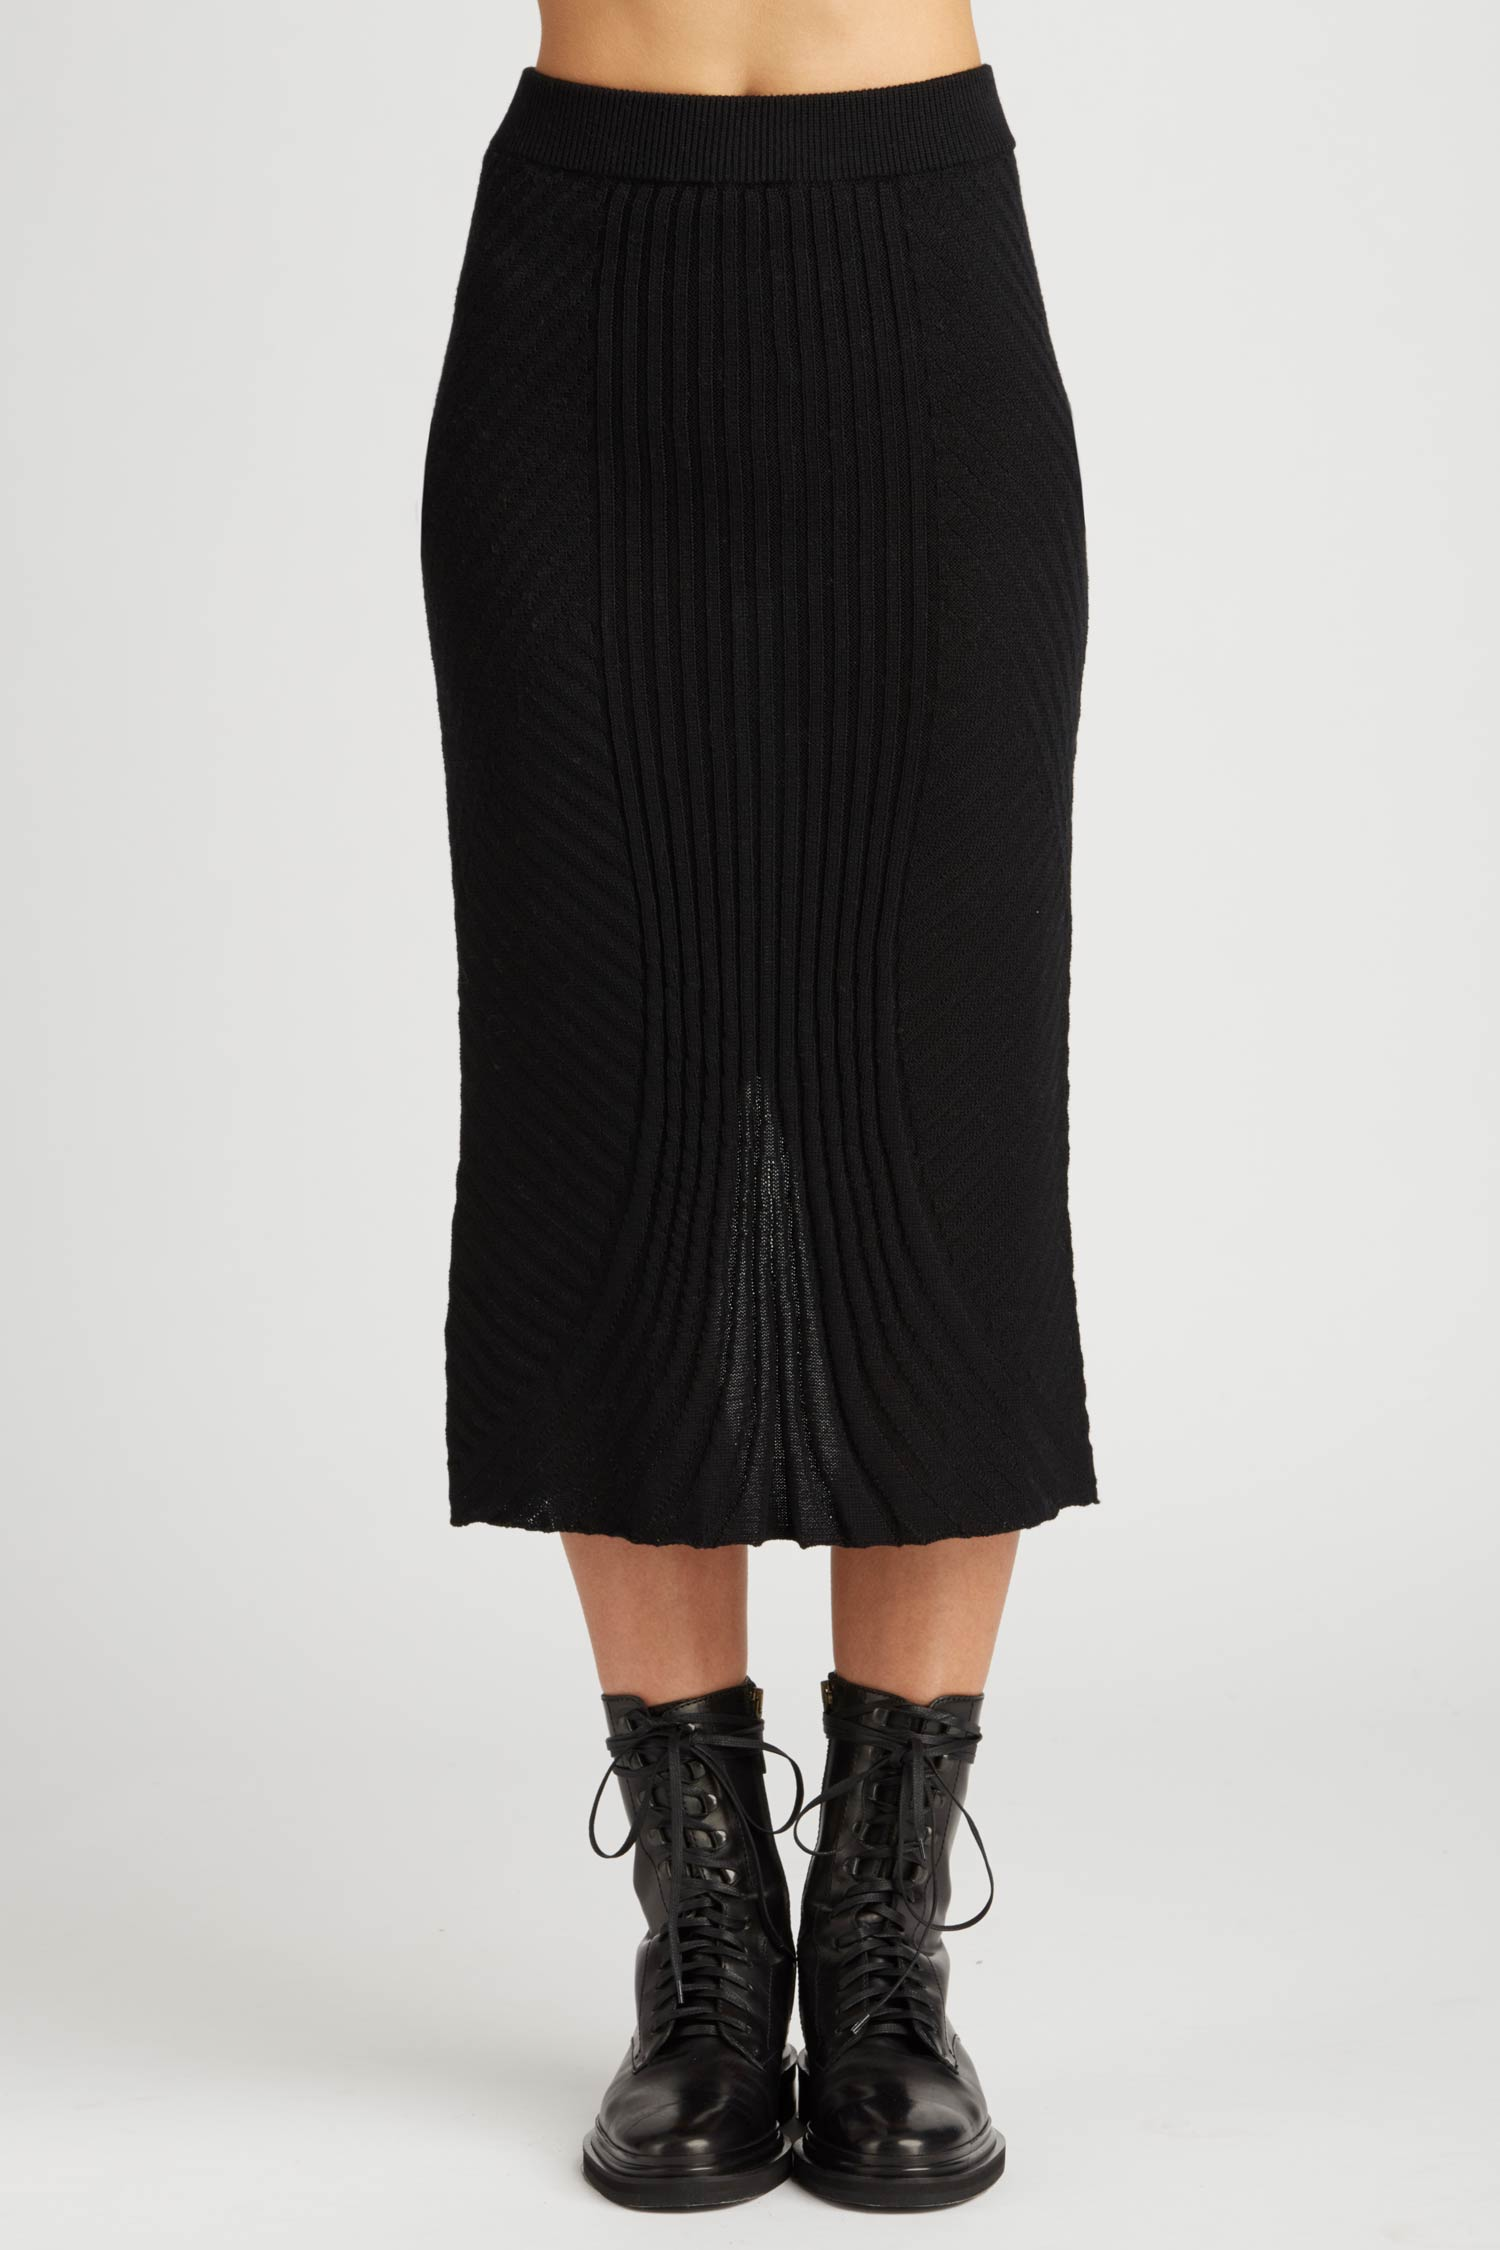 Alternating Rib Knit Skirt - Indigenous